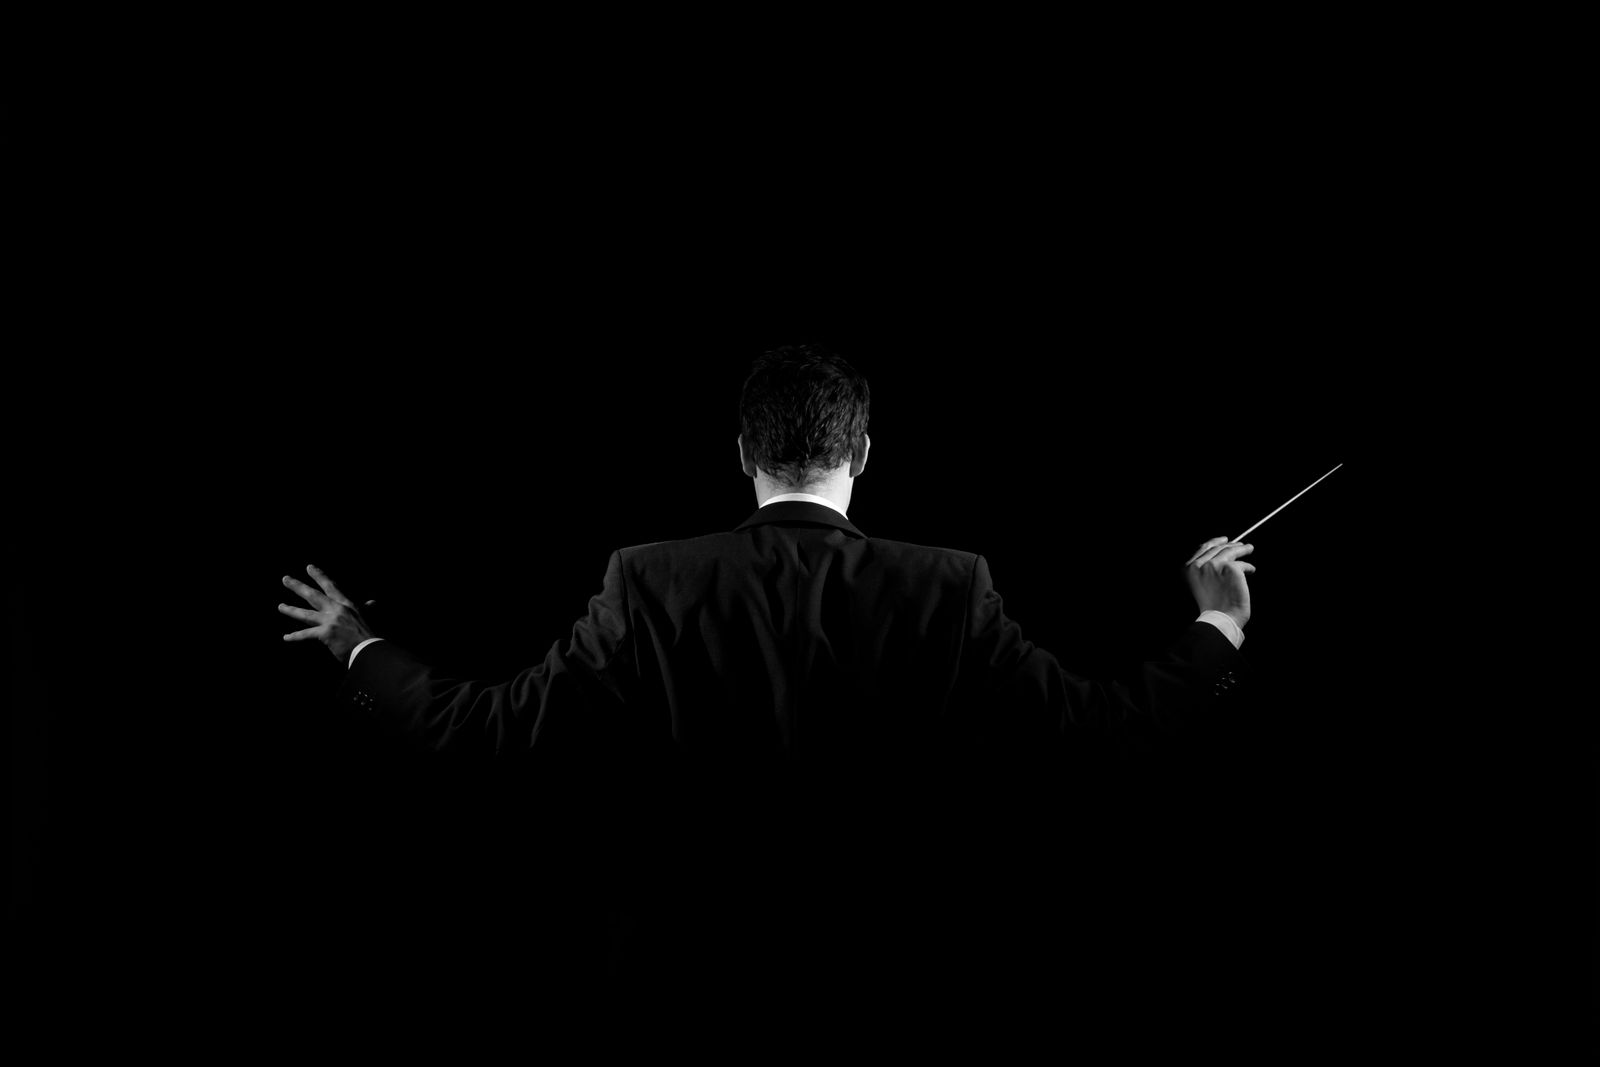 Conductor in shadow